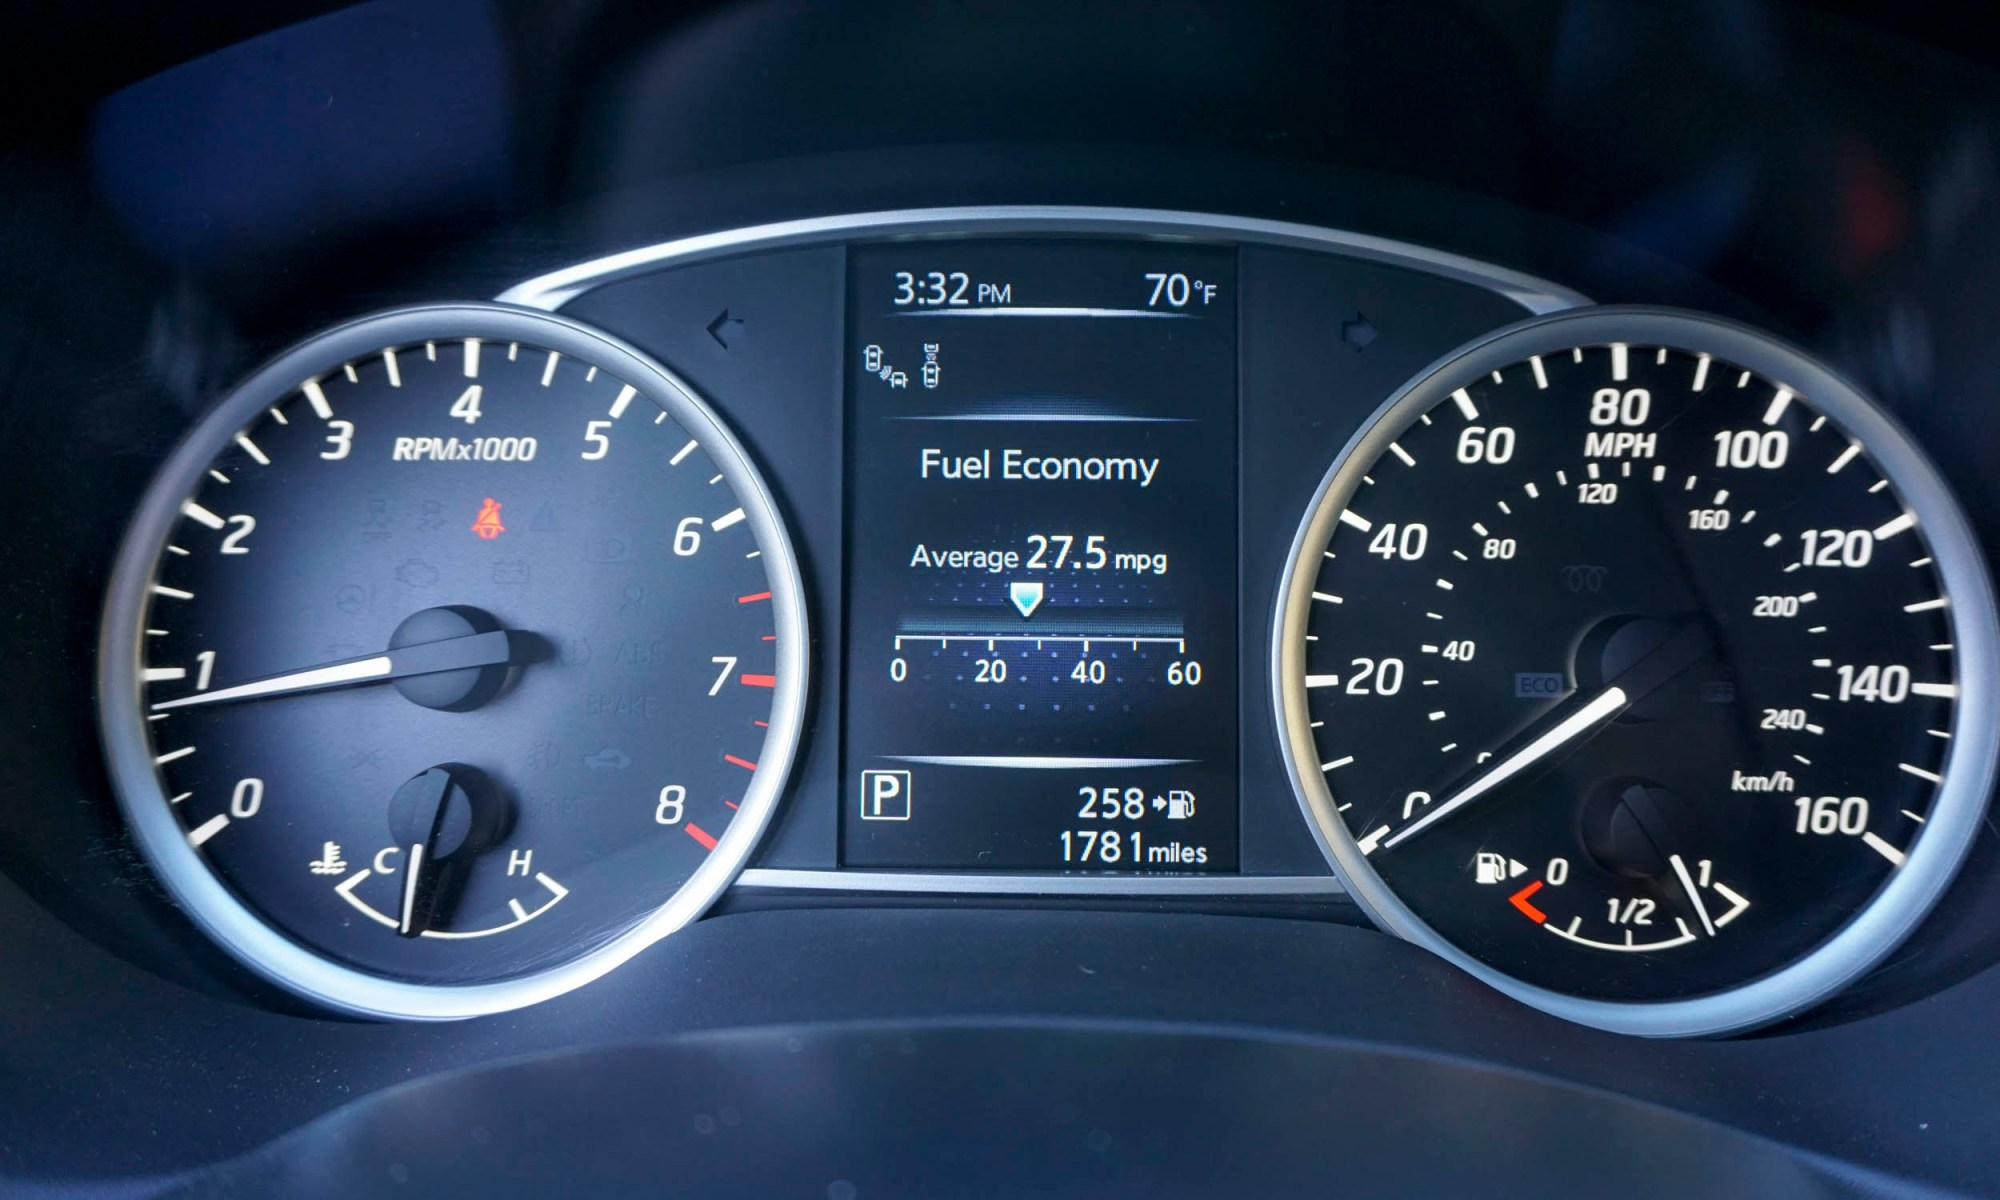 hight resolution of perry stern automotive content experience gauge cluster